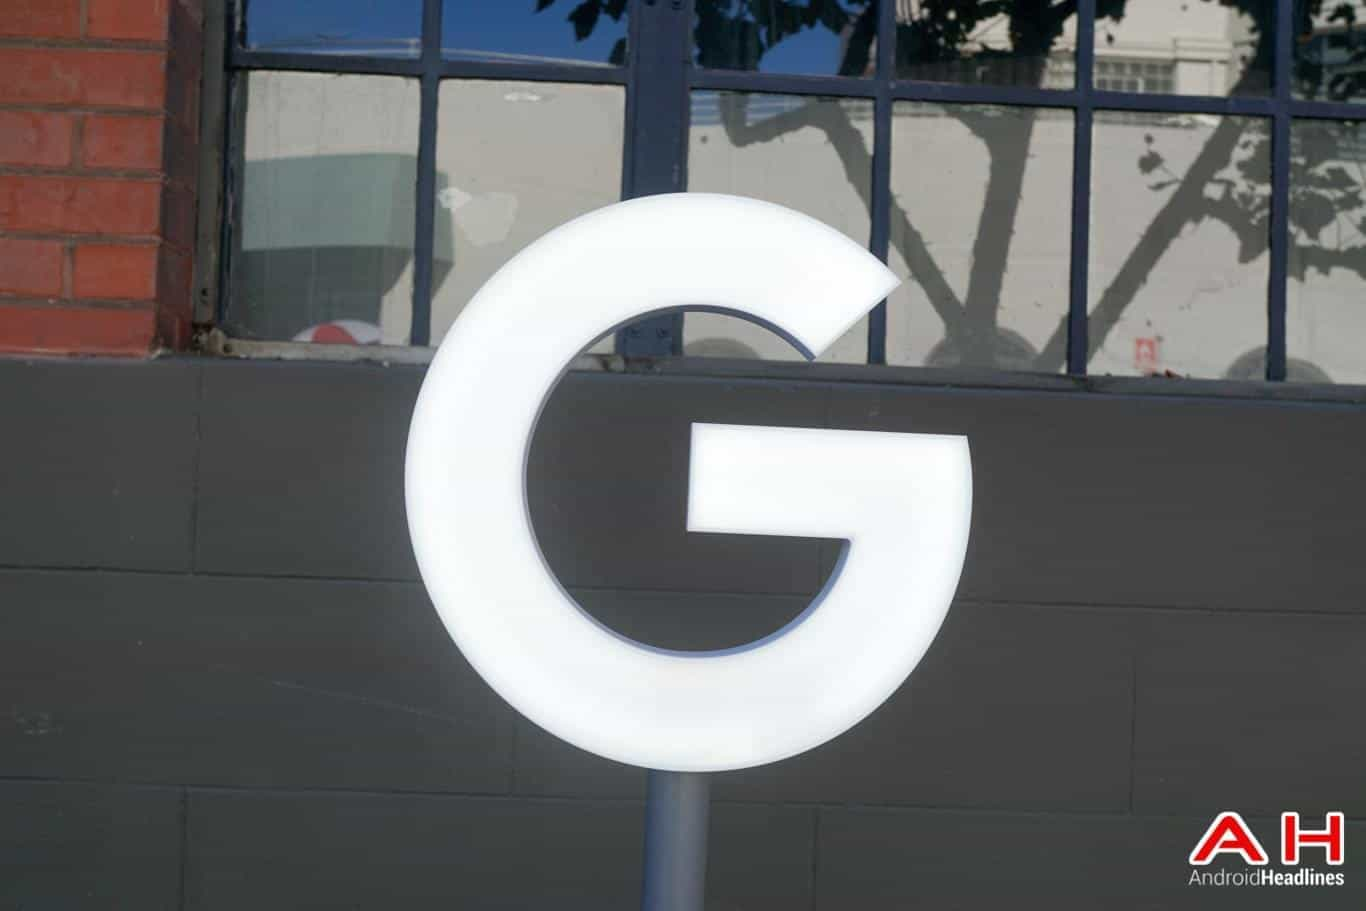 Google recently acquired health technology startup Senosis Health, sources with knowledge of the matter said earlier this month. No financial details of th